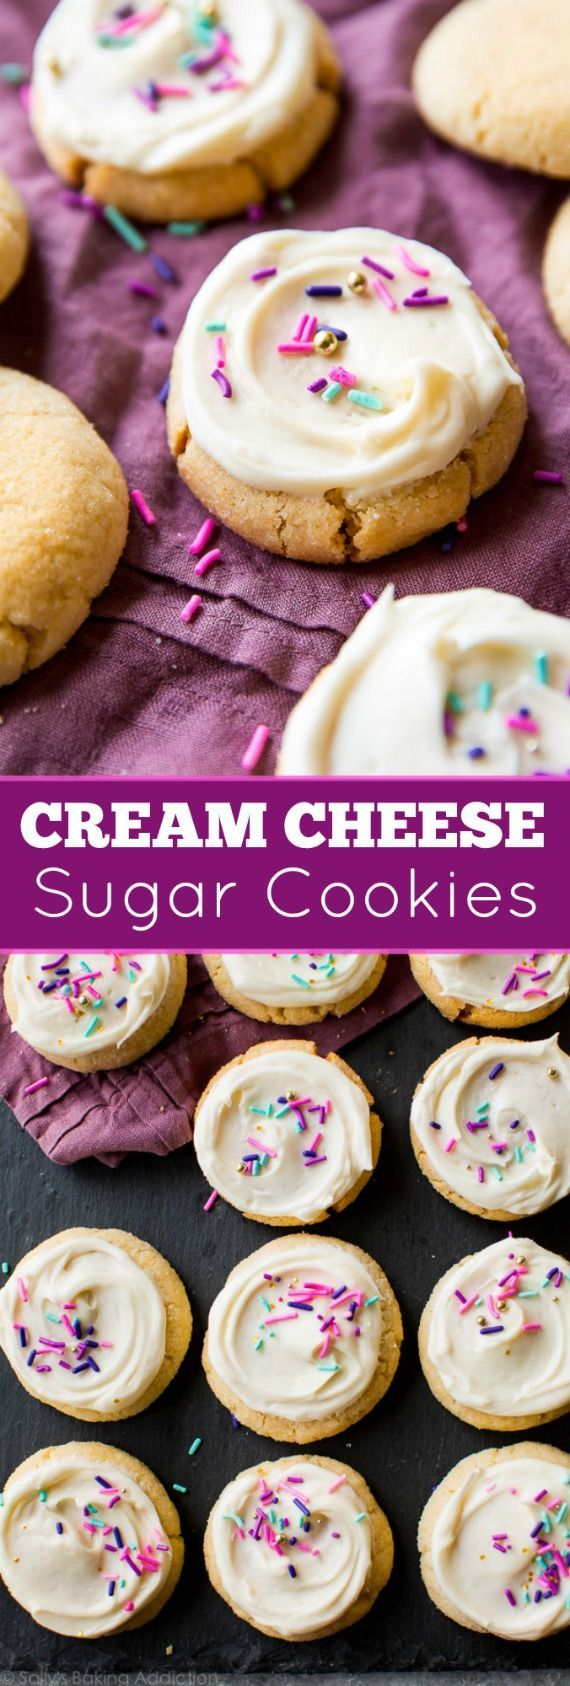 Cream cheese turns good sugar cookies into GREAT sugar cookies! Soft, tender, chewy, with incredible flavor! Recipe on http:∕∕sallysbakingaddiction.com